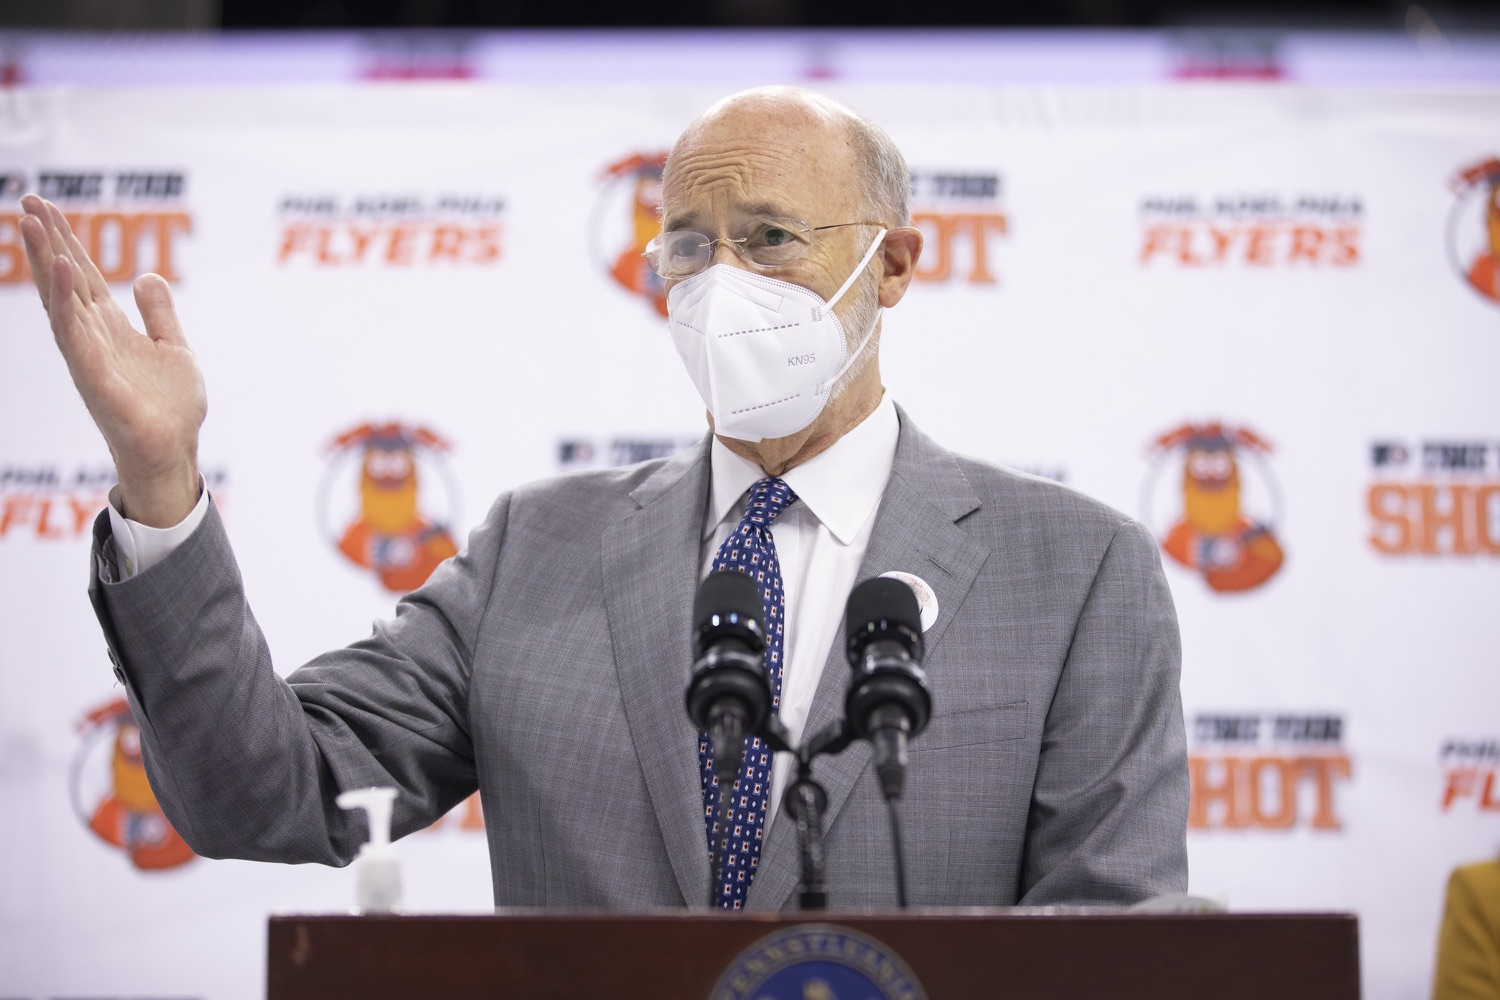 """<a href=""""https://filesource.wostreaming.net/commonwealthofpa/photo/18727_gov_vaccines_dz_005.JPG"""" target=""""_blank"""">⇣Download Photo<br></a>Pennsylvania Governor Tom Wolf speaking with the press.   Governor Tom Wolf today visited the Philadelphia Flyers organization at the Wells Fargo Center in Philadelphia to discuss COVID-19 vaccine efforts in Pennsylvania. The Flyers recently launched a comprehensive COVID-19 vaccine campaign, Take Your Shot, encouraging Pennsylvanians to get vaccinated.  Philadelphia, PA  MAY 3, 2021"""